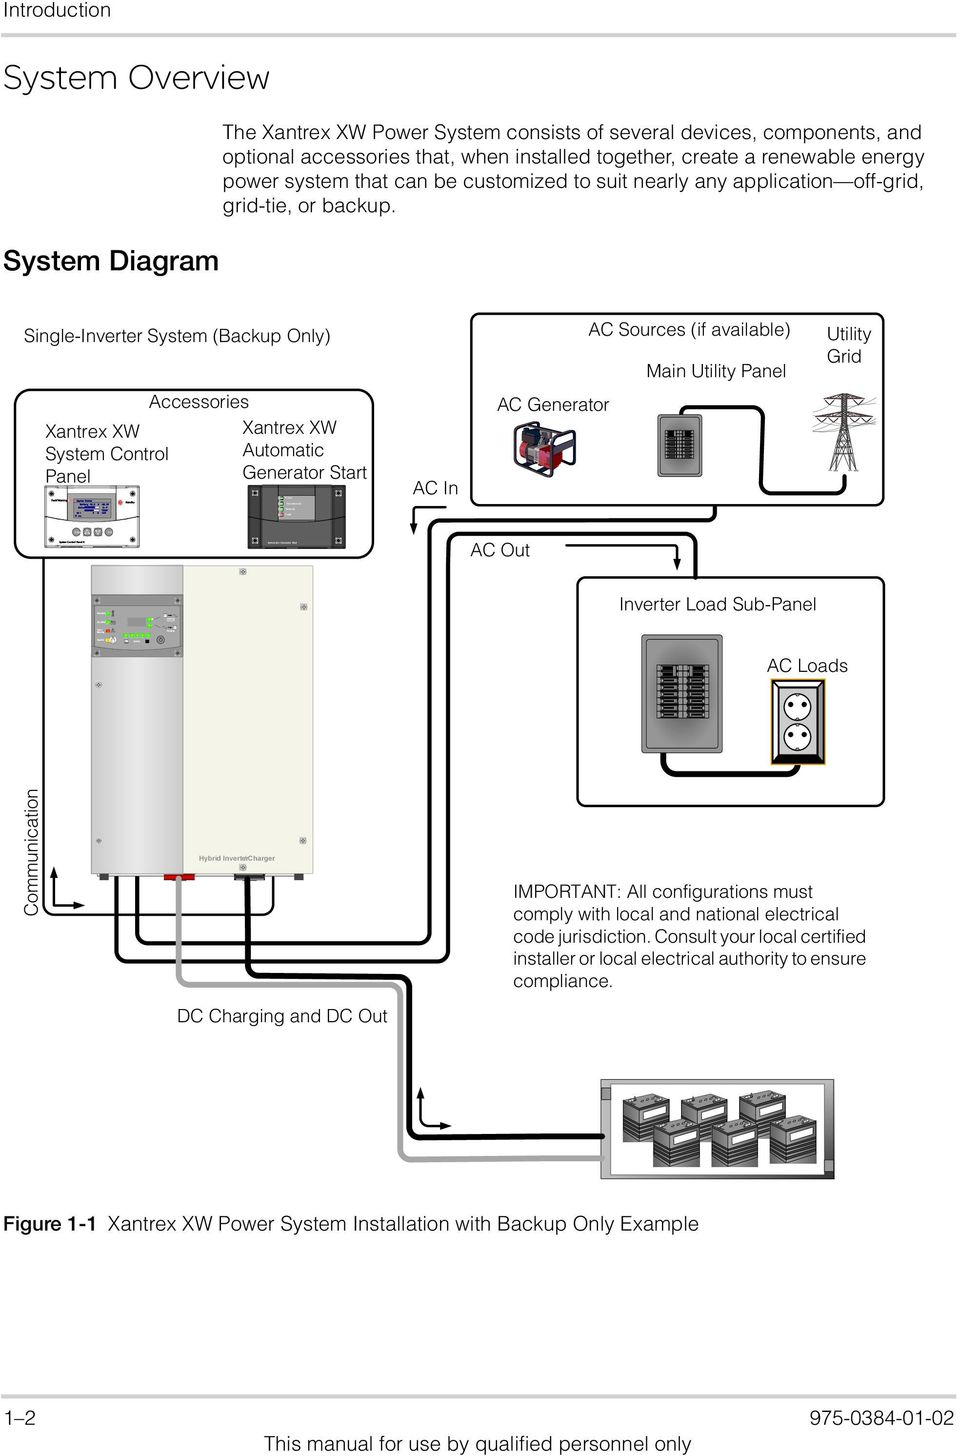 medium resolution of automatic generator start introduction system overview system diagram the xantrex xw power system consists of several